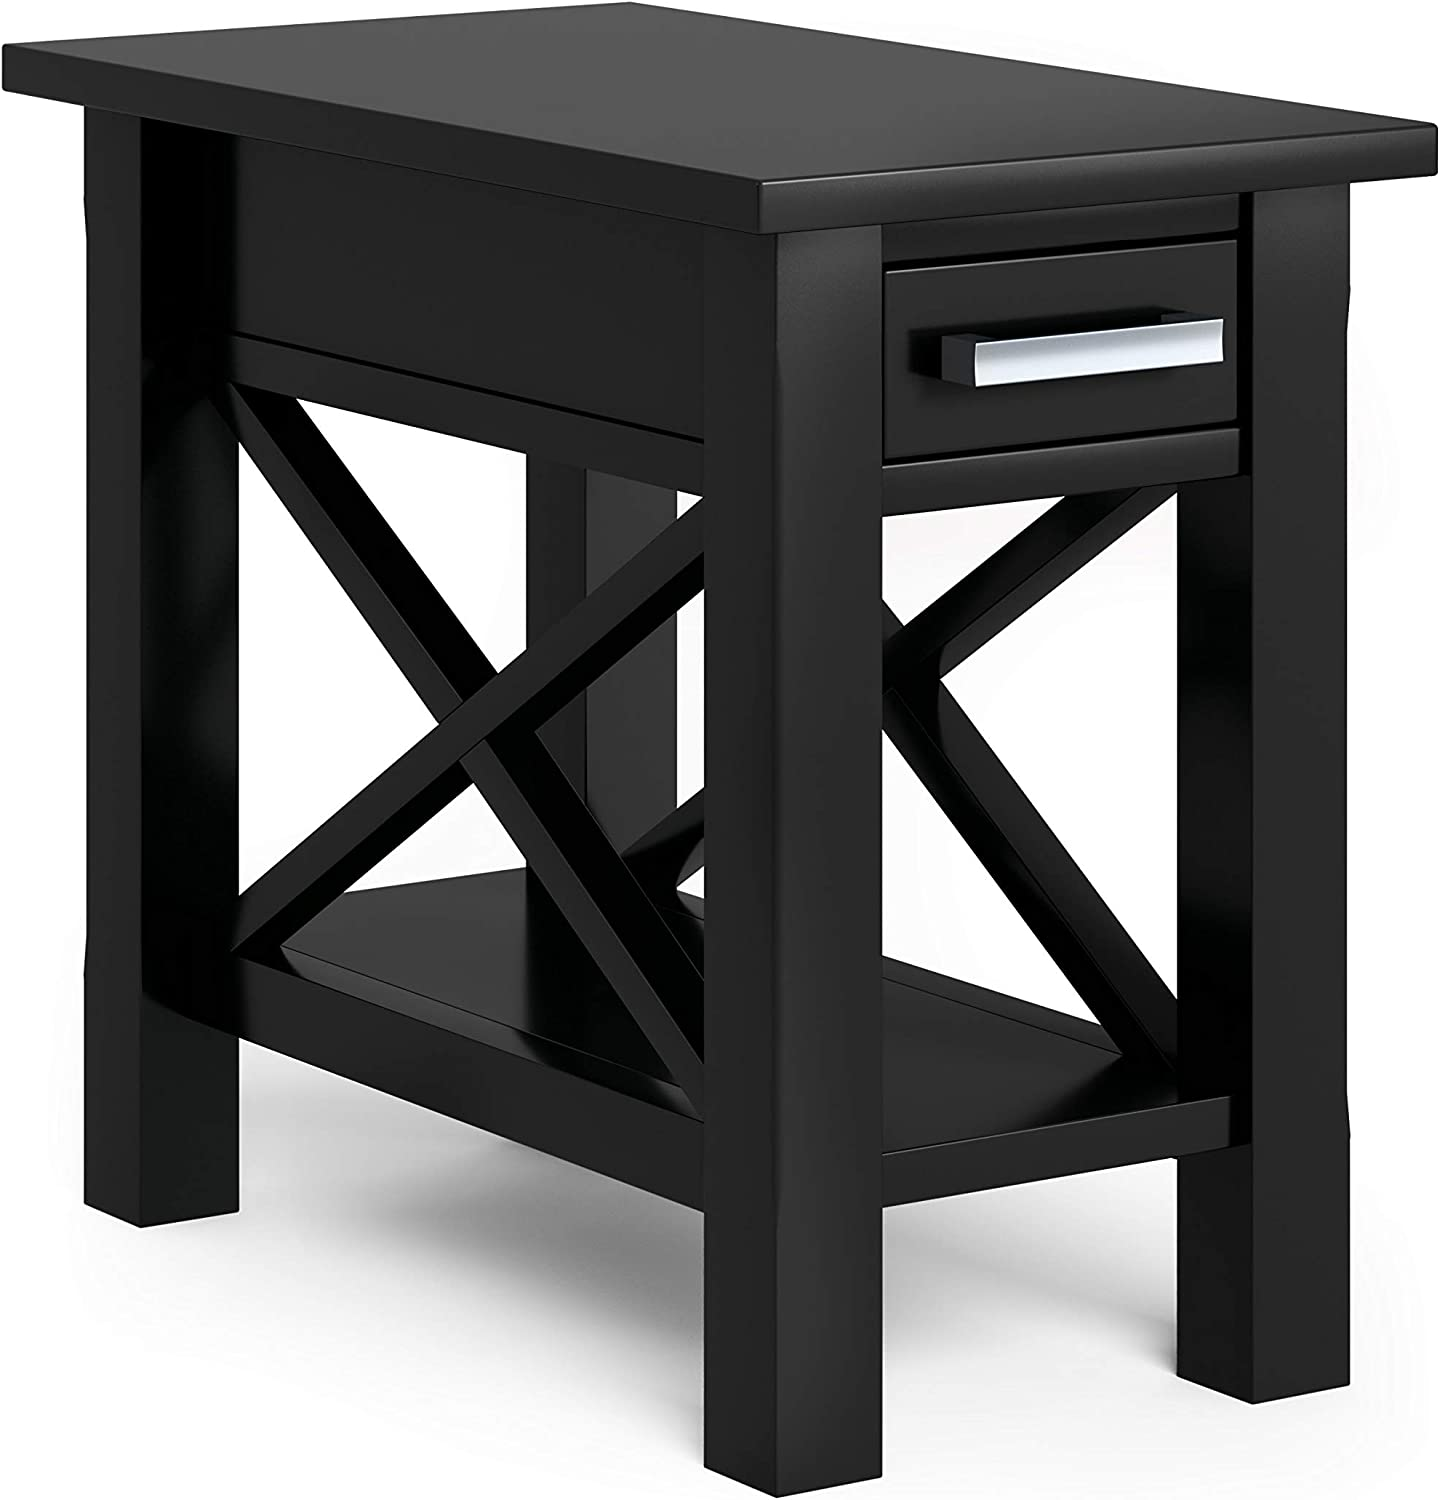 SIMPLIHOME Kitchener SOLID WOOD 14 inch Wide Rectangle Contemporary Narrow Side Table in Black with Storage, 1 Drawer, 1 Shelf, for the Living Room and Bedroom